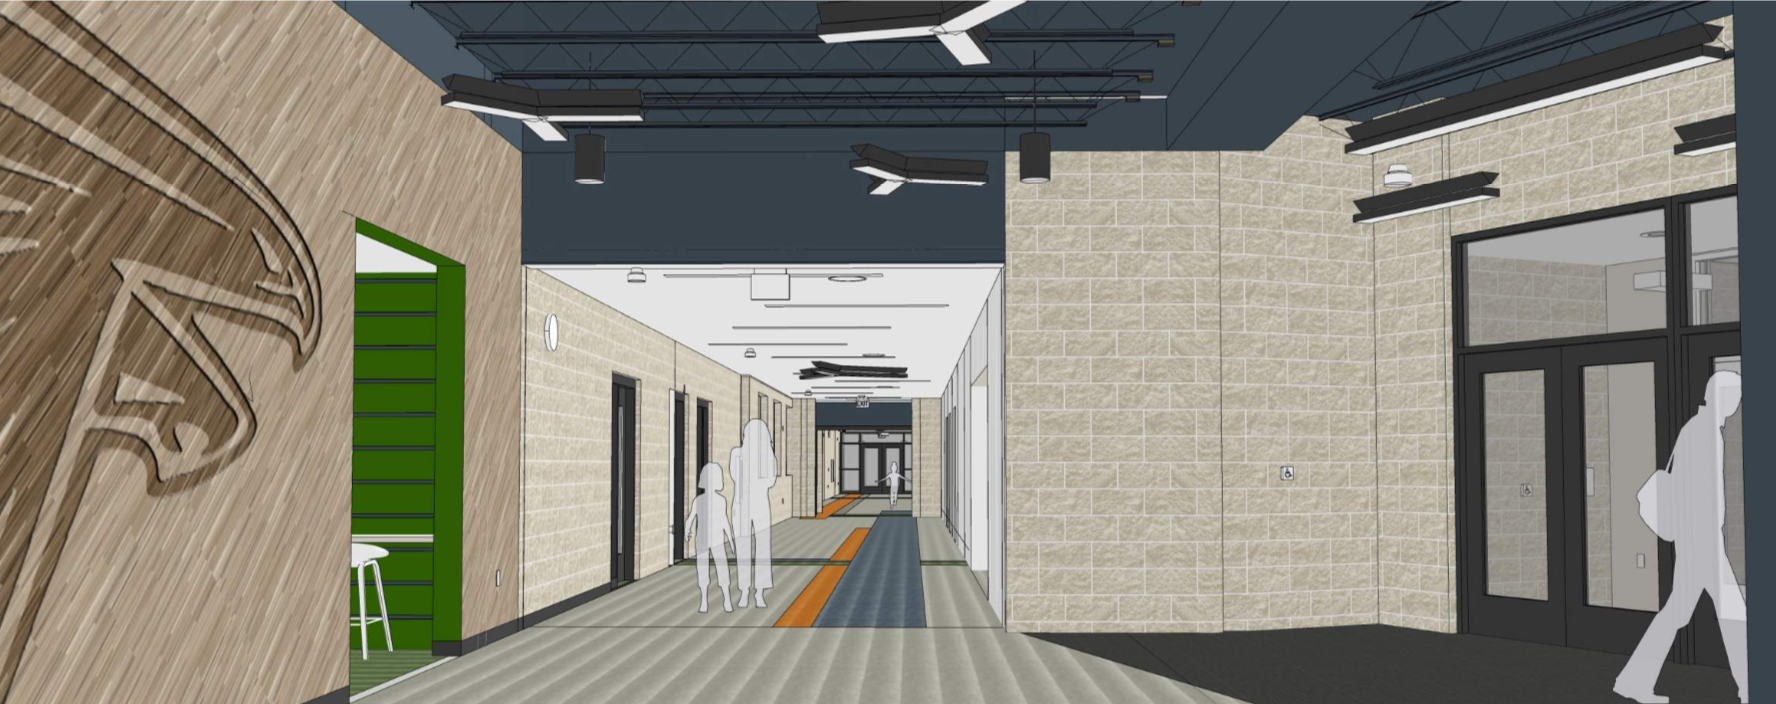 Interior view of the Lobby/Front Entrance.